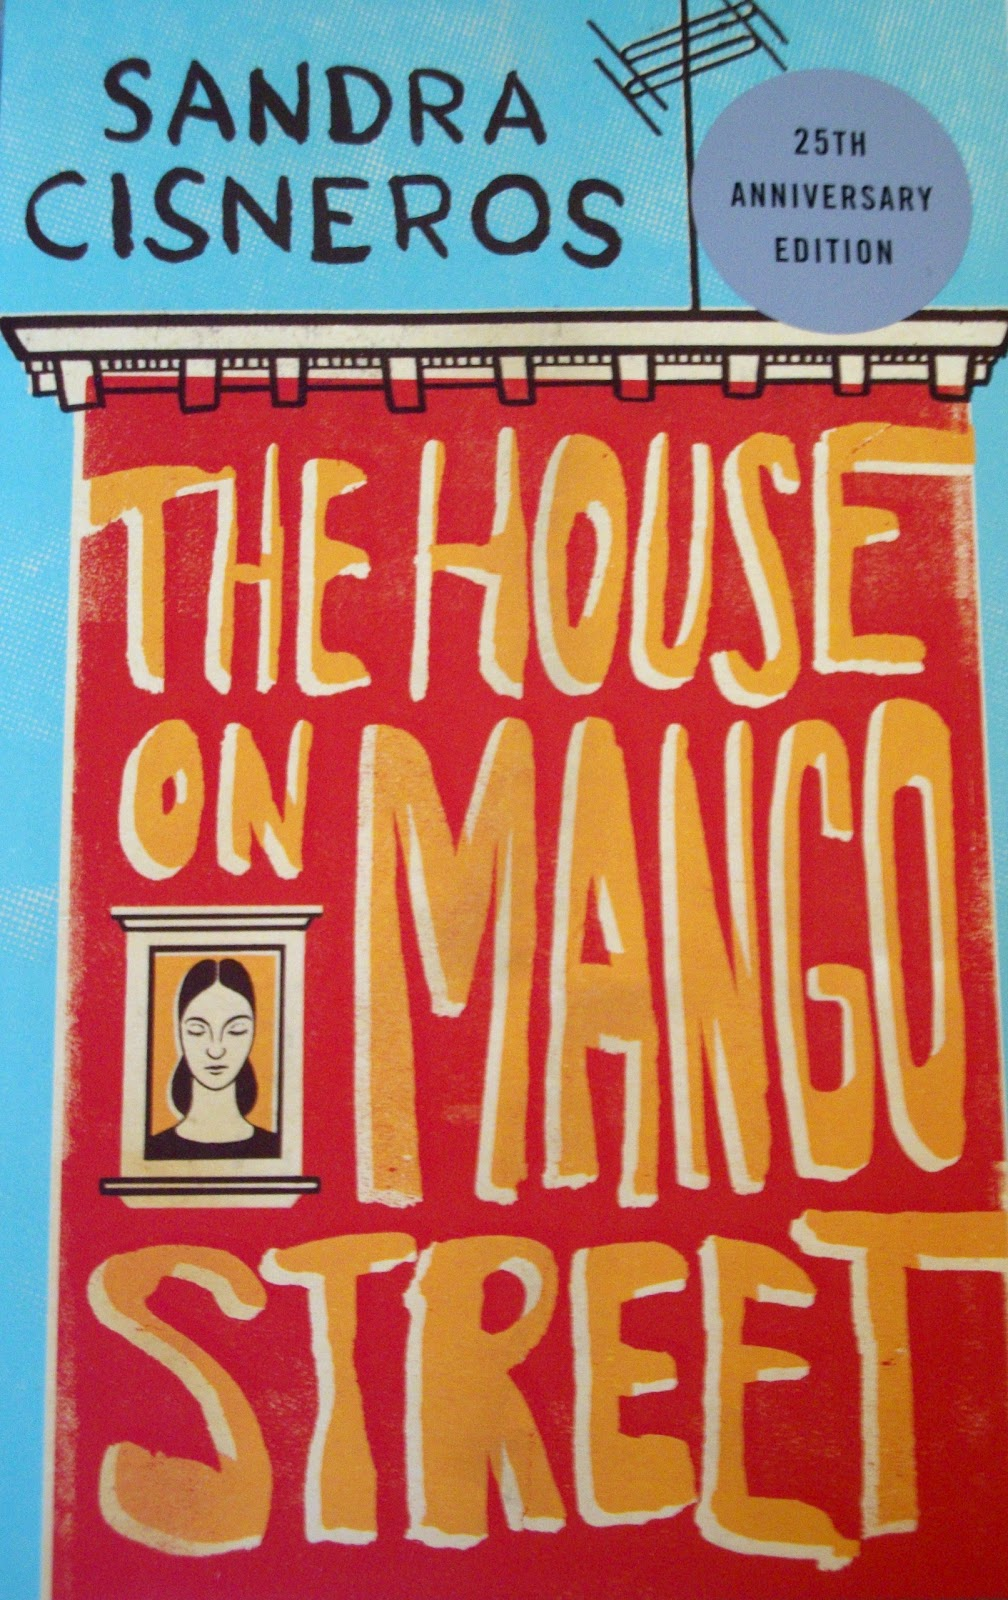 house on mango street essay topics Free essay on the house on mango street sample essay on the house on mango street the house on mango street essay example buy custom essays, term papers, research papers on any literature topics at essay lib.